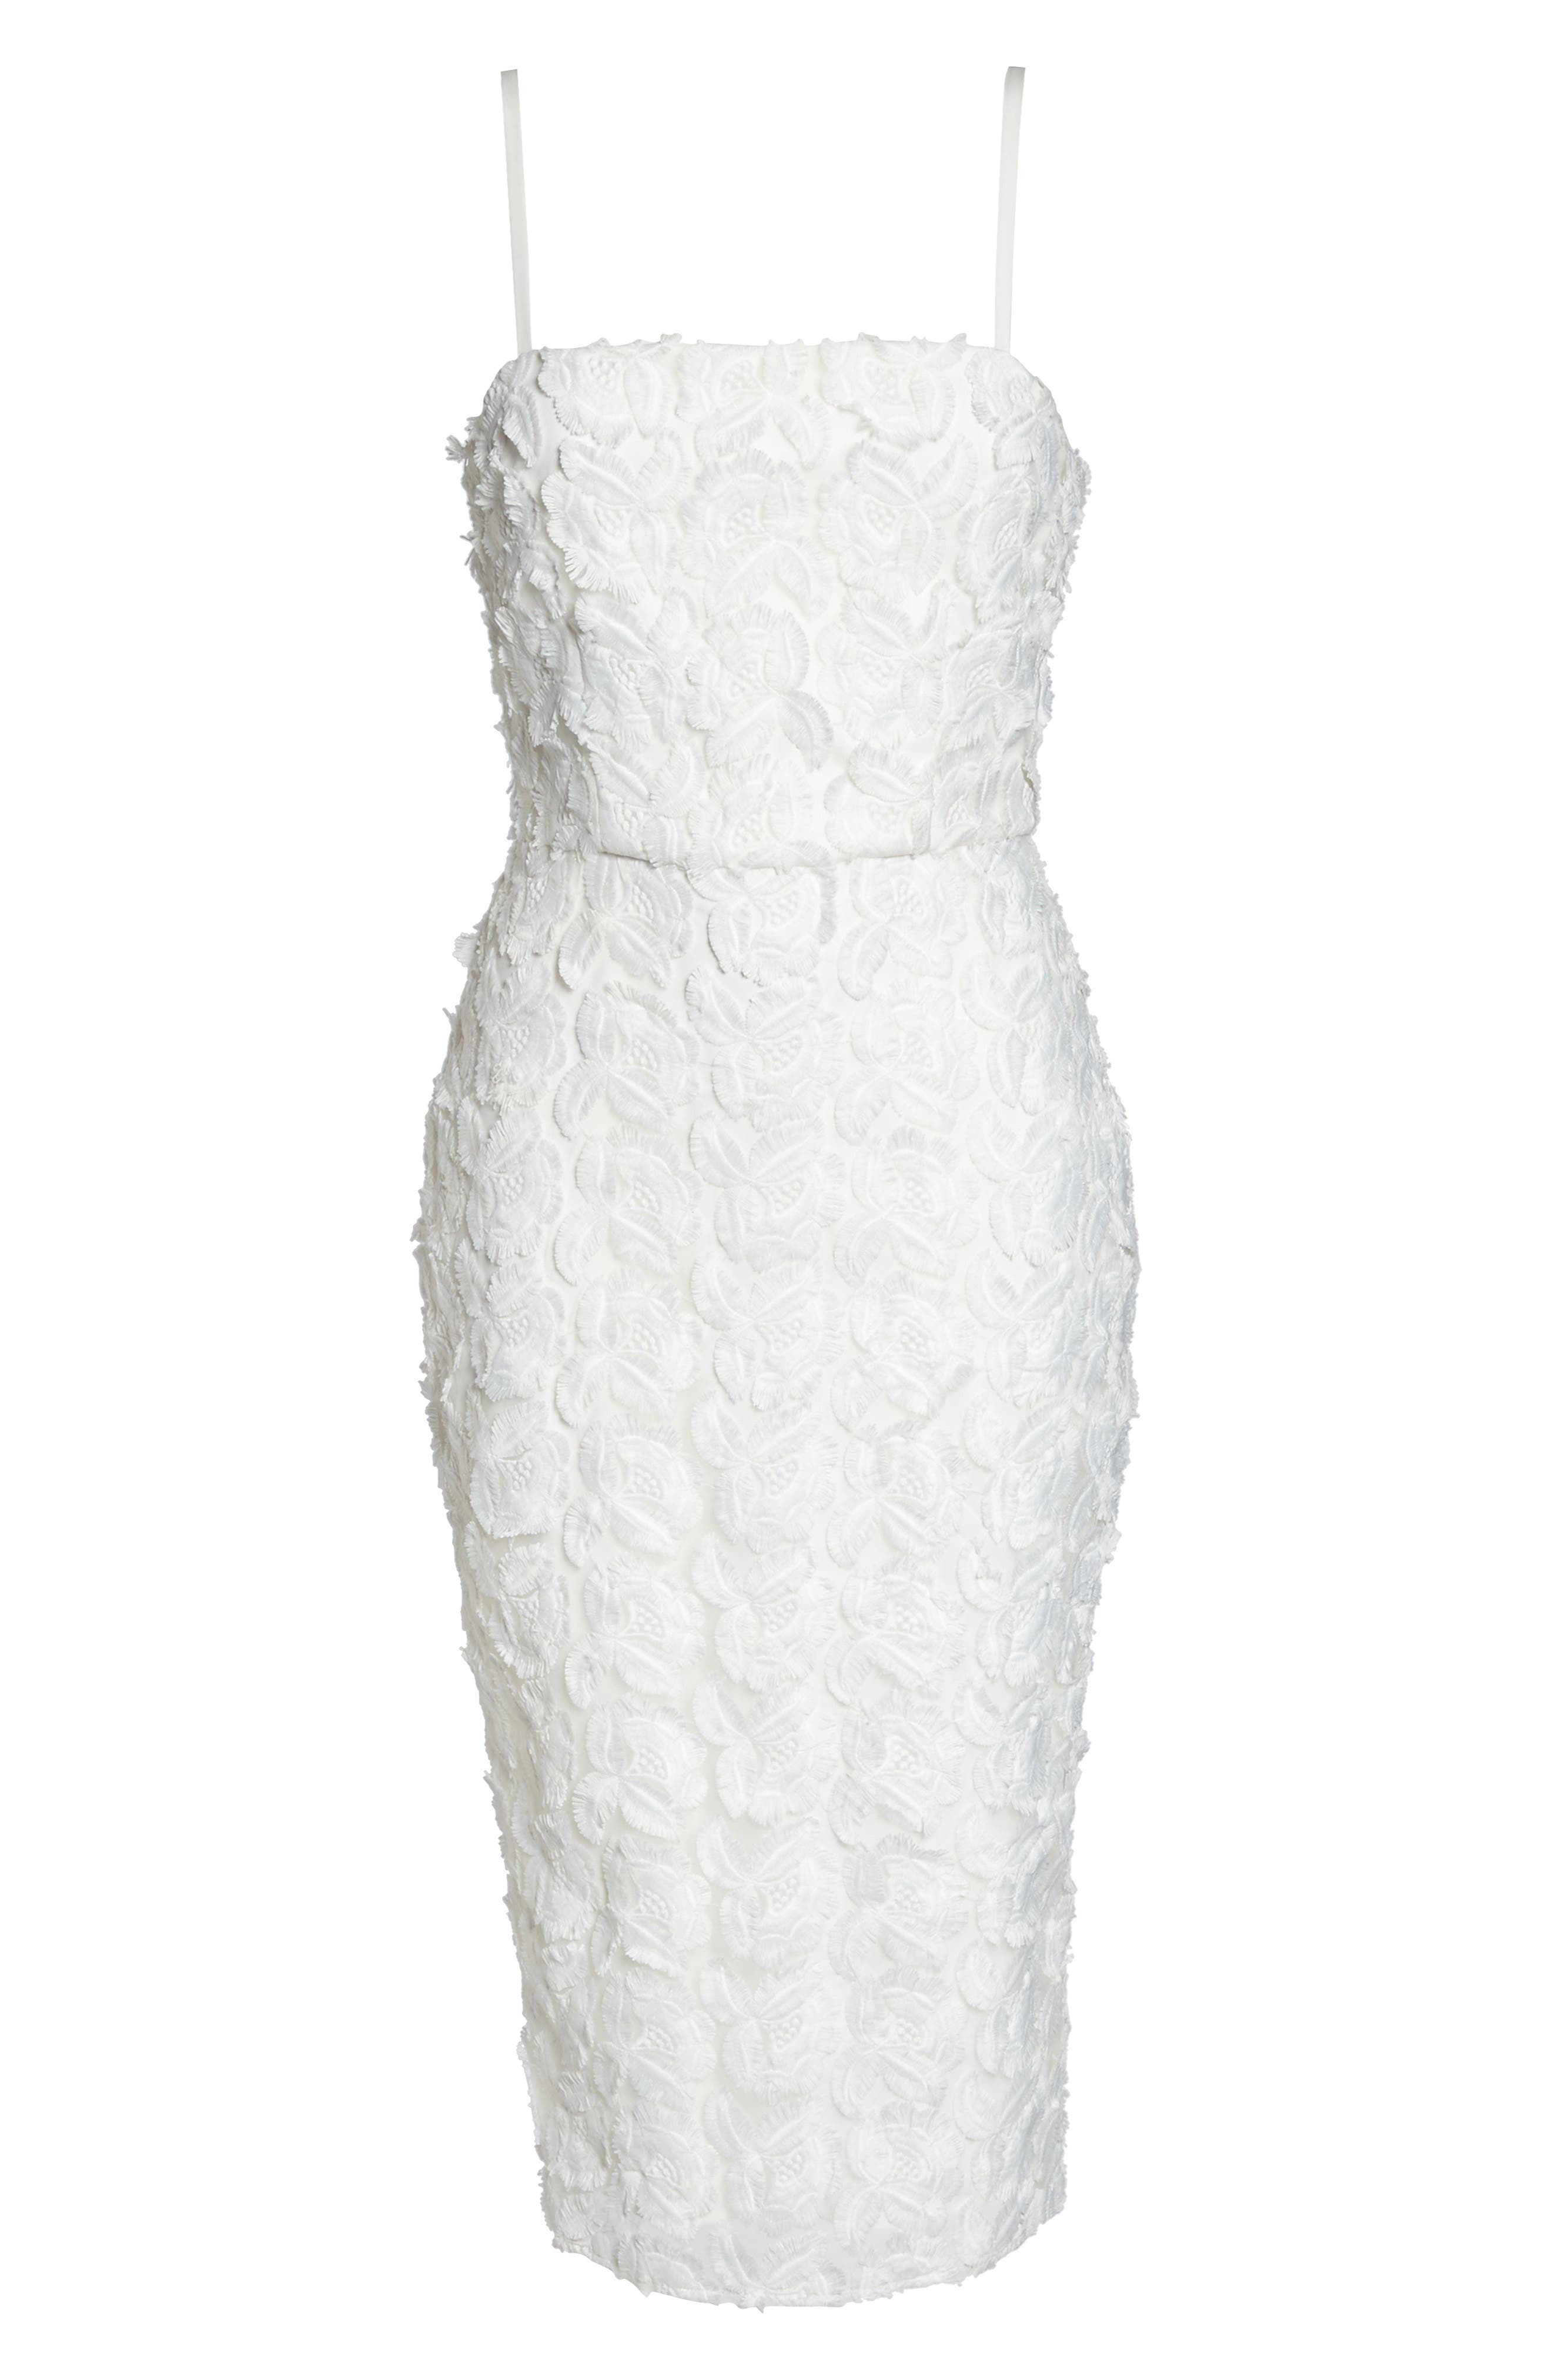 Floral Mirage Embroidered Lace Dress,                             Alternate thumbnail 12, color,